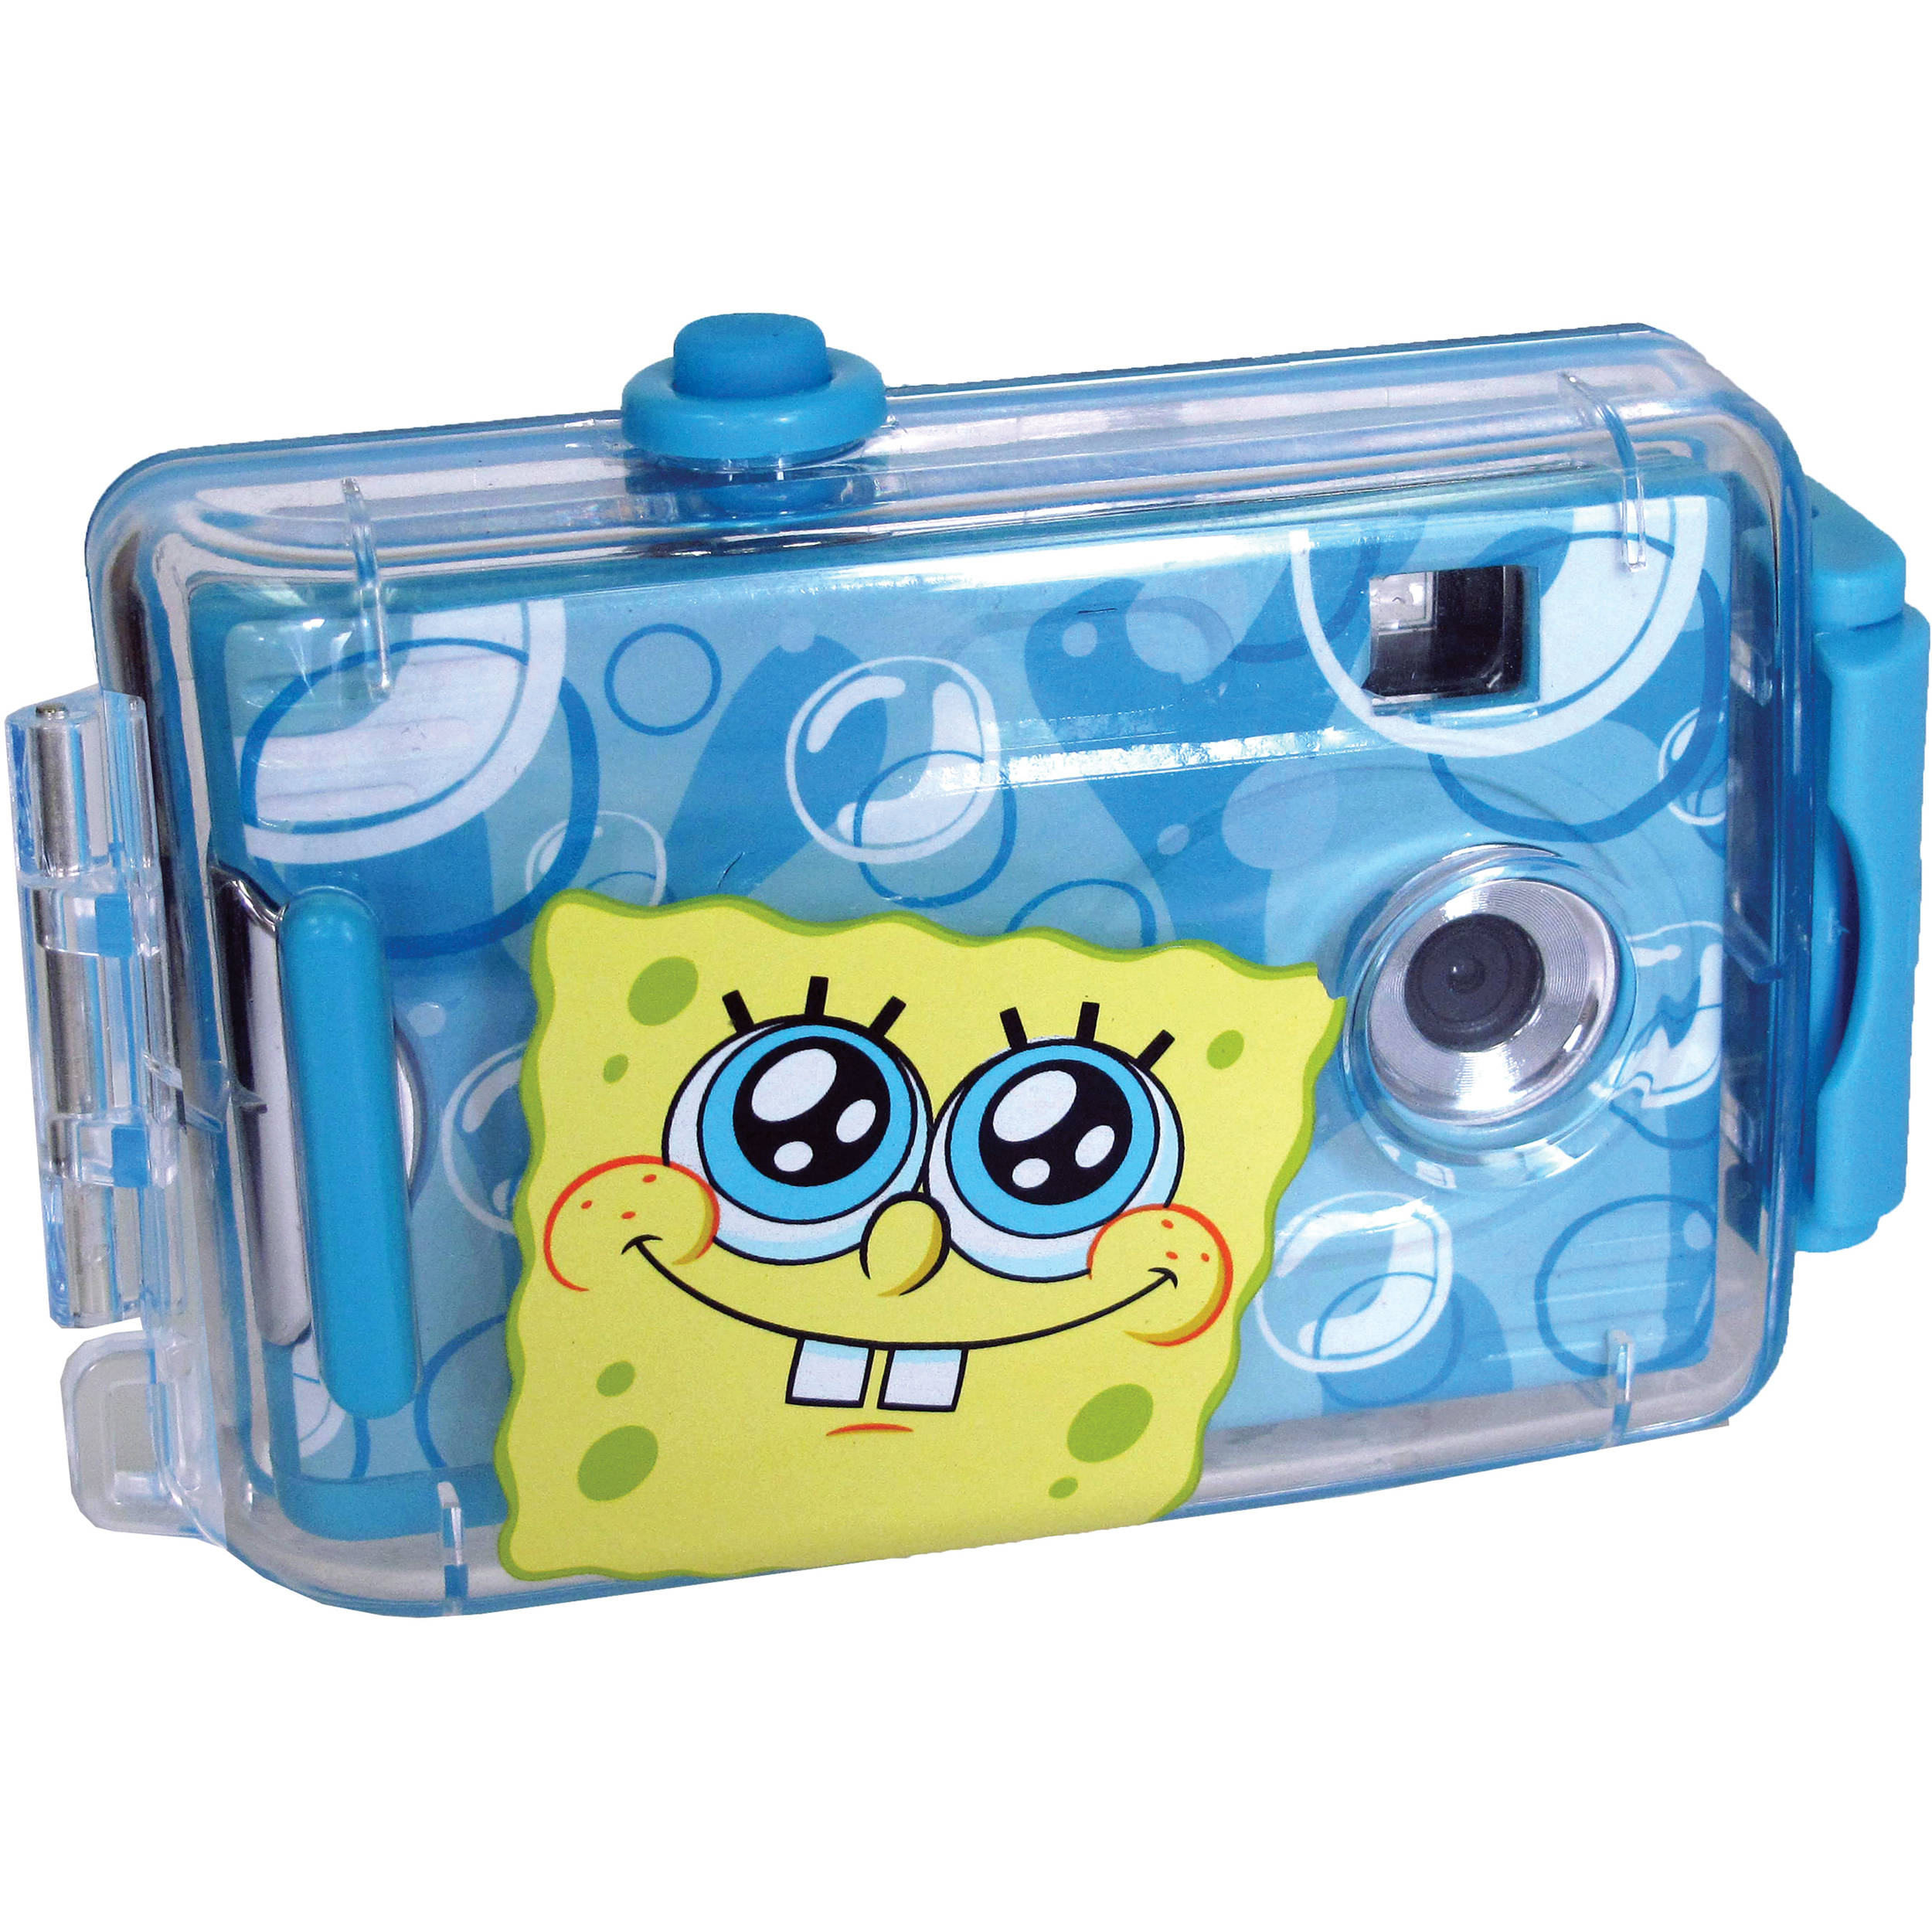 Sakar SpongeBob Underwater Digital Camera